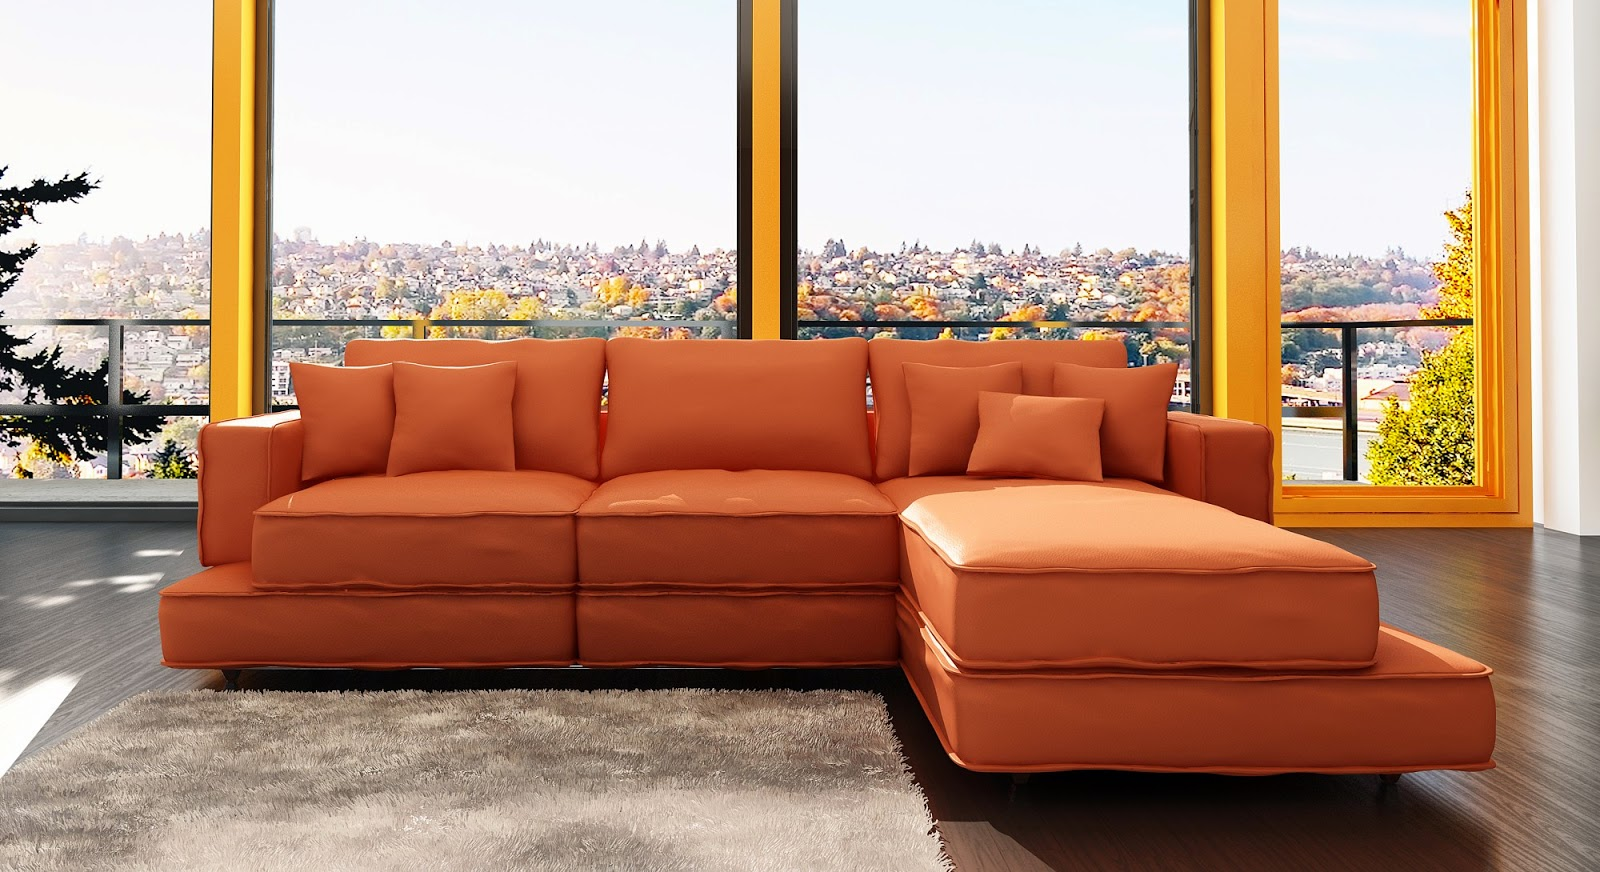 amazing orange white sofa living room furniture set | Orange Sofa - Freshnist Design